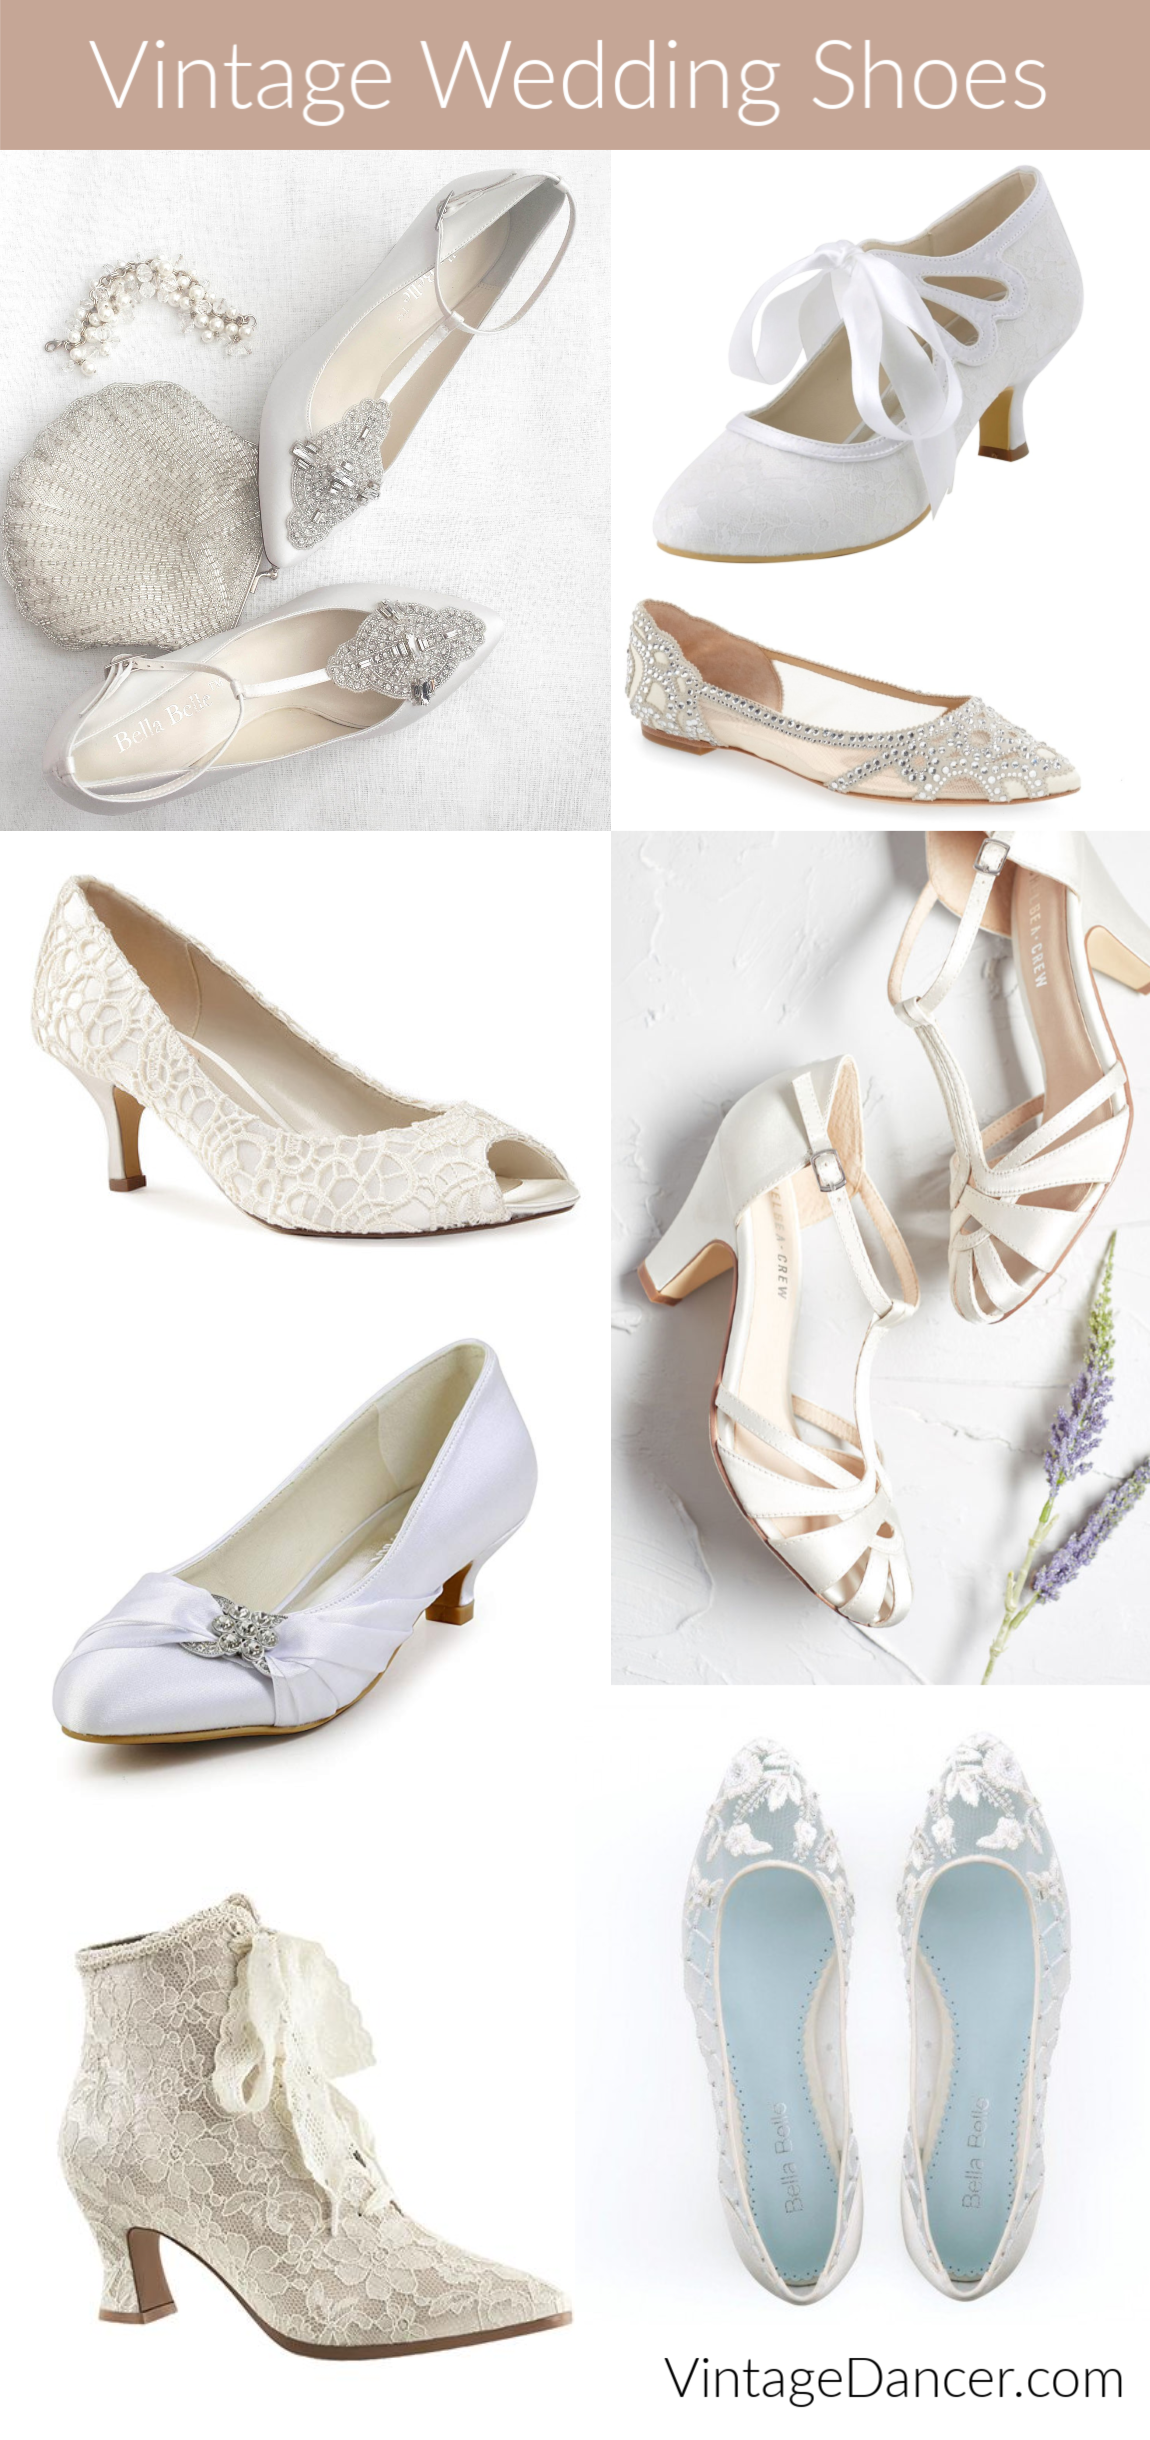 Vintage Style Wedding Shoes Retro Inspired Shoes Wedding Dress